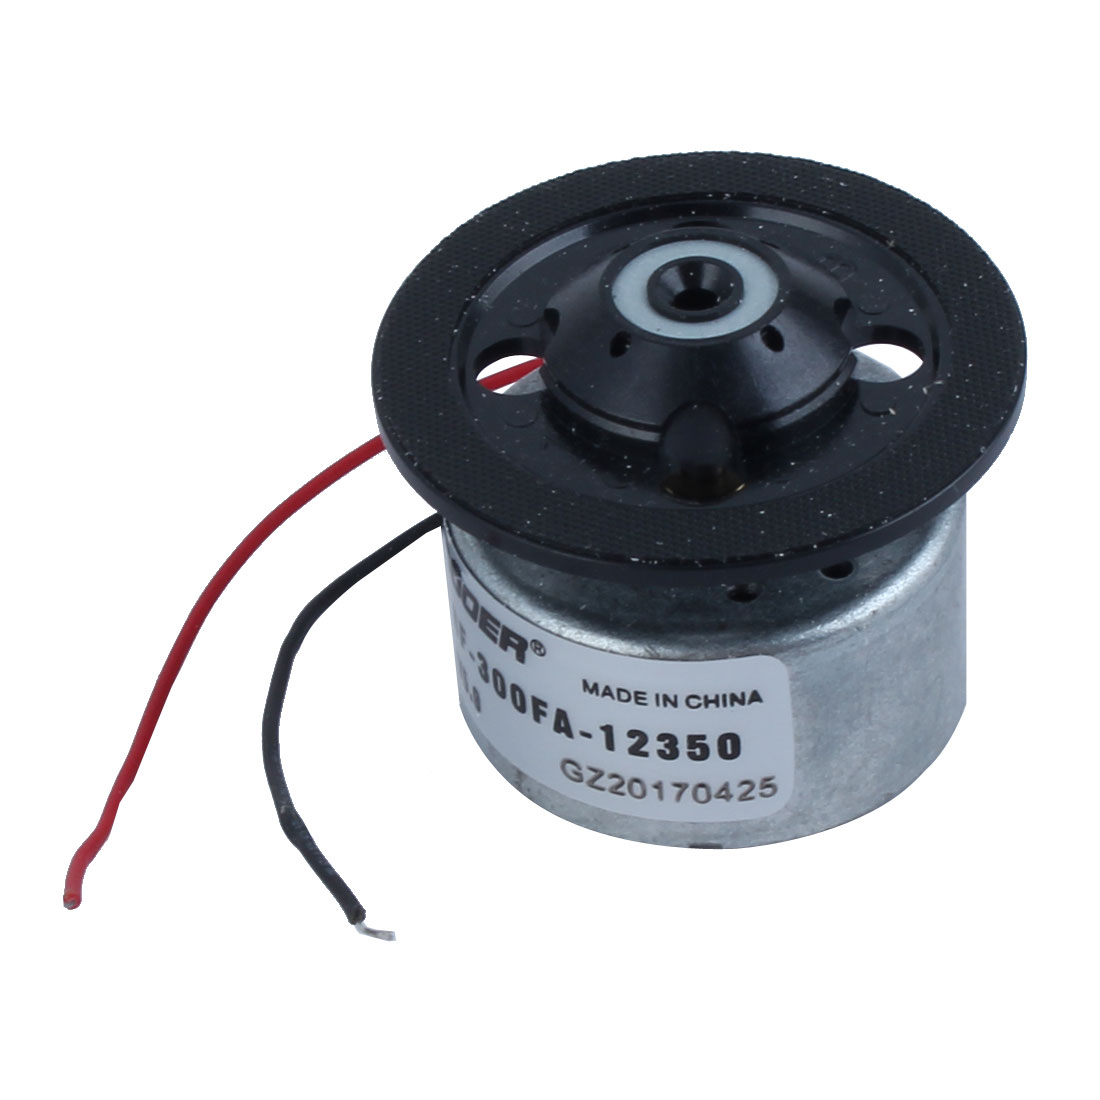 Replacement-DVD-Player-RF-300FA-12350-Spindle-Motor-DC-5-9V